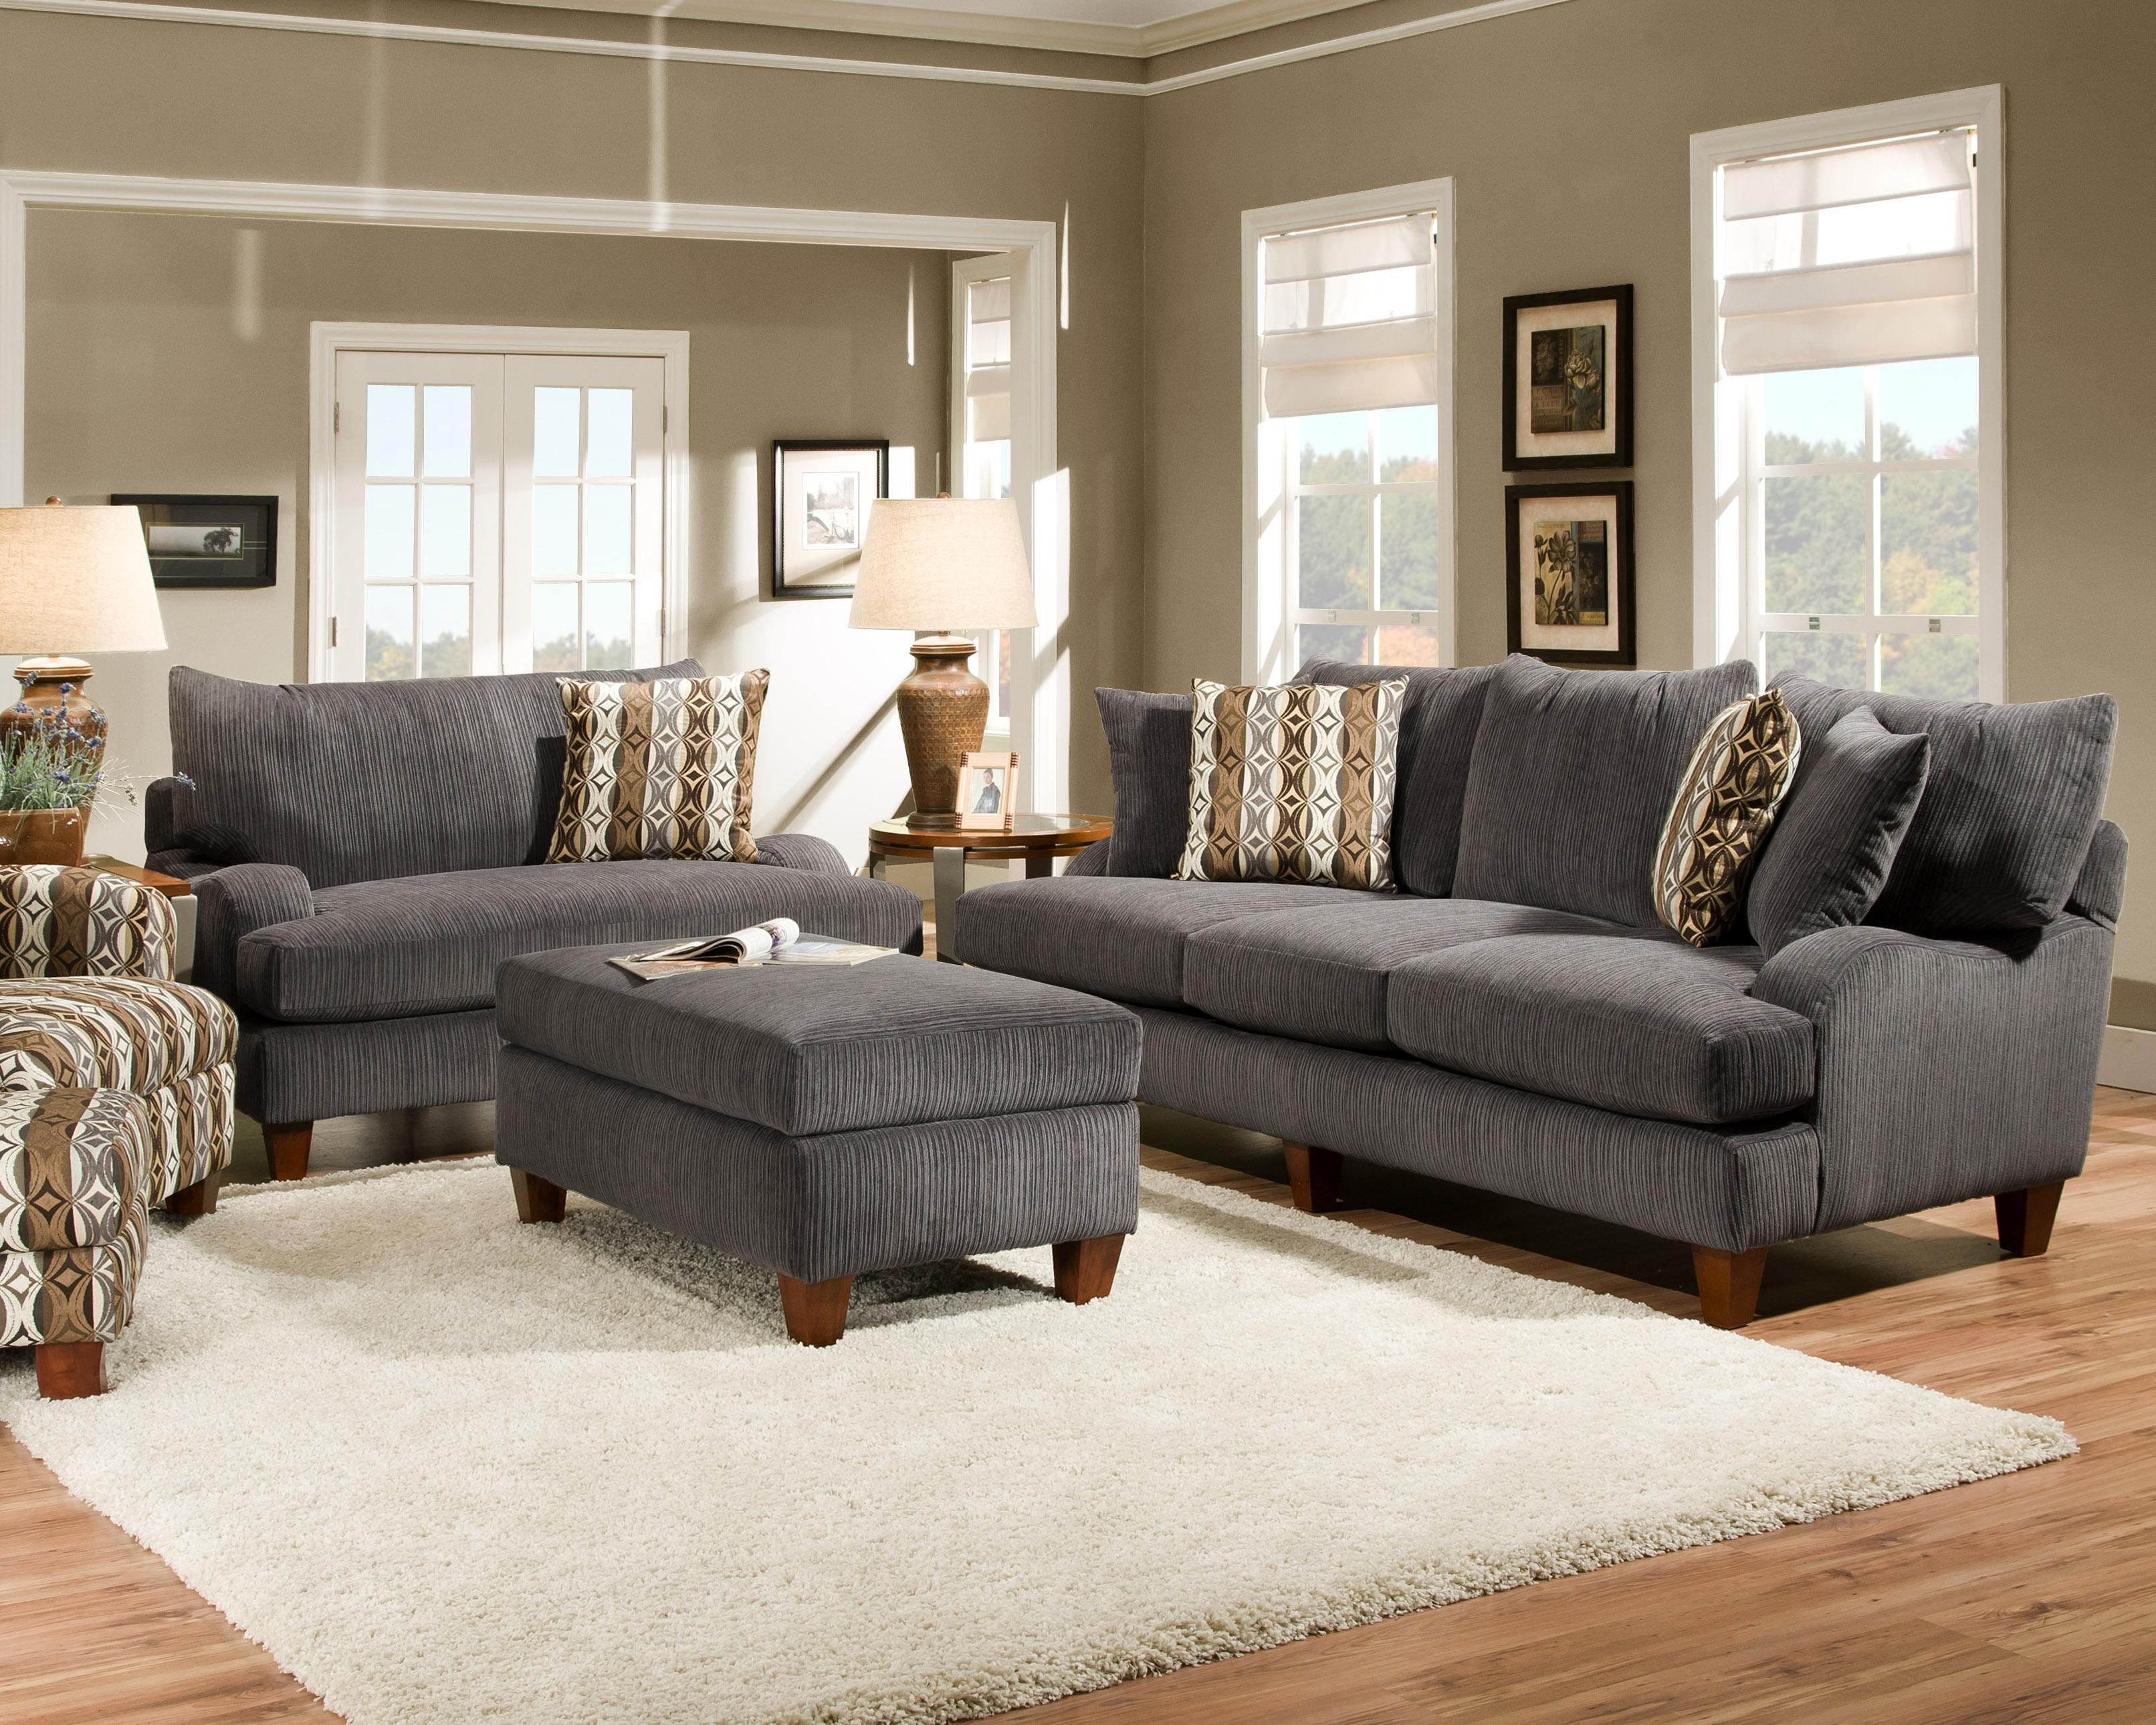 Sofas Center : Blue Gray Sectional Sofa And Loveseat Setsgrey Set Pertaining To Blue Gray Sofas (View 17 of 20)